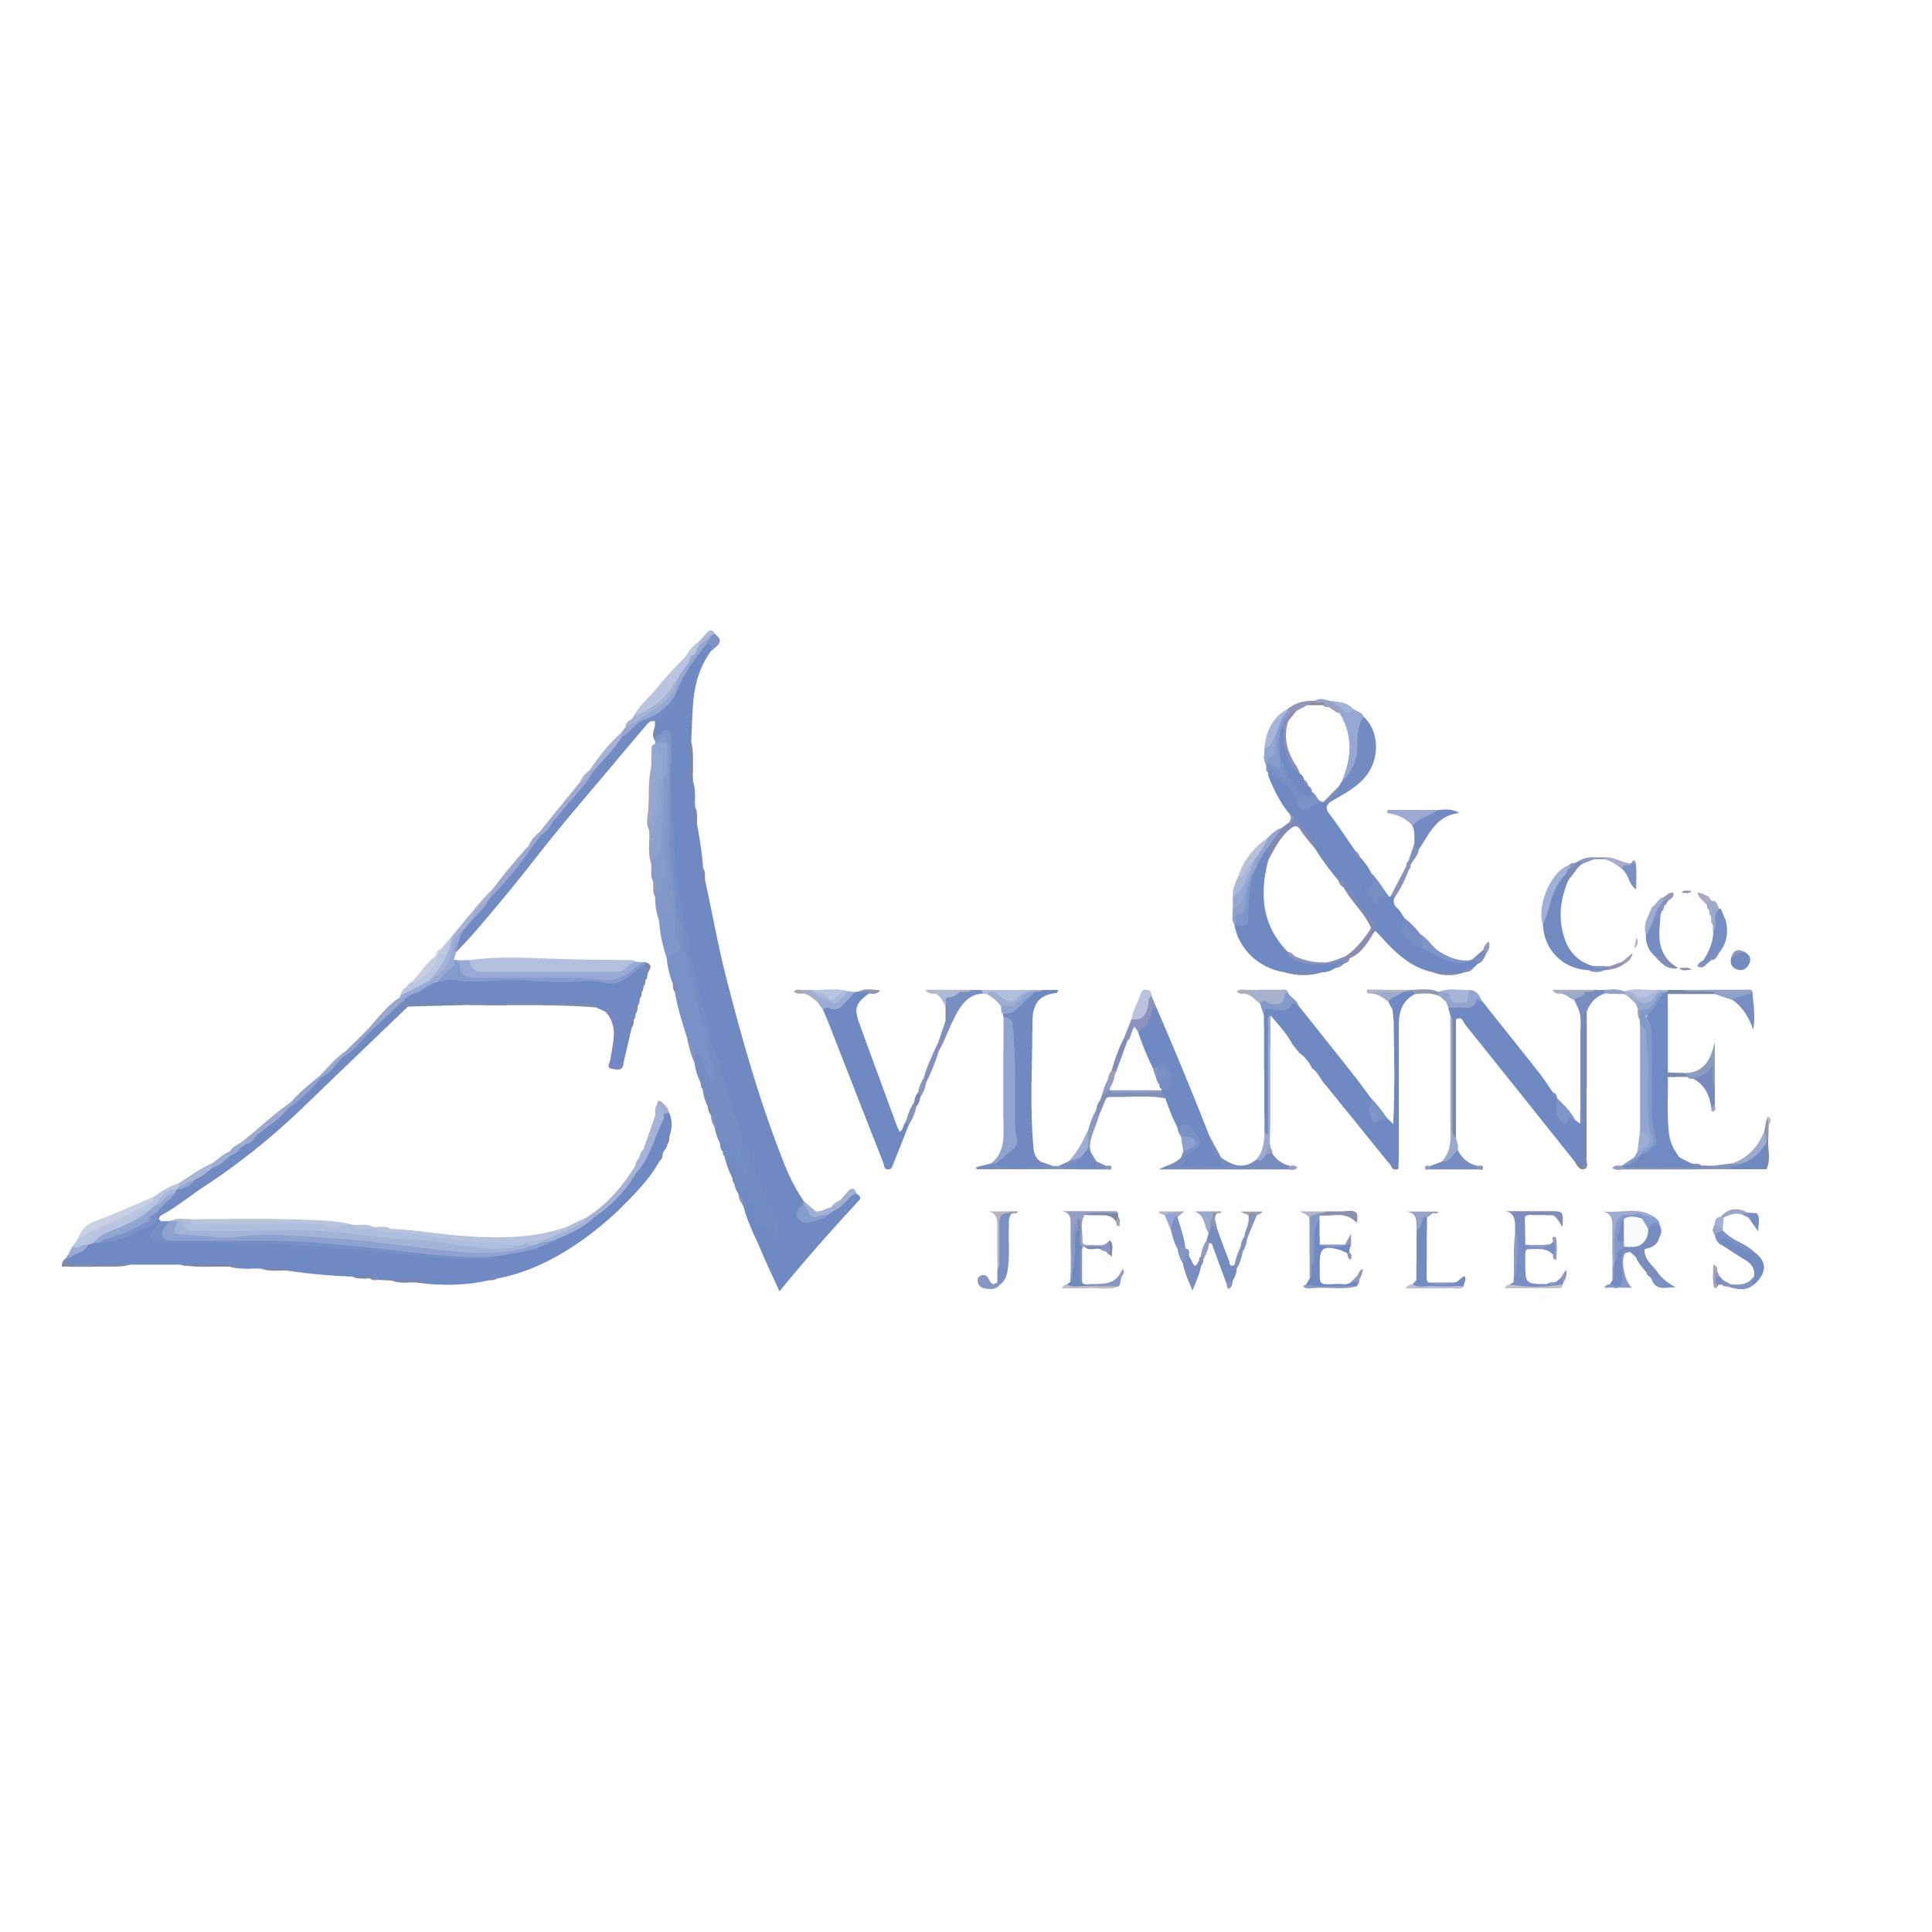 Avianne & Co. Jewelers